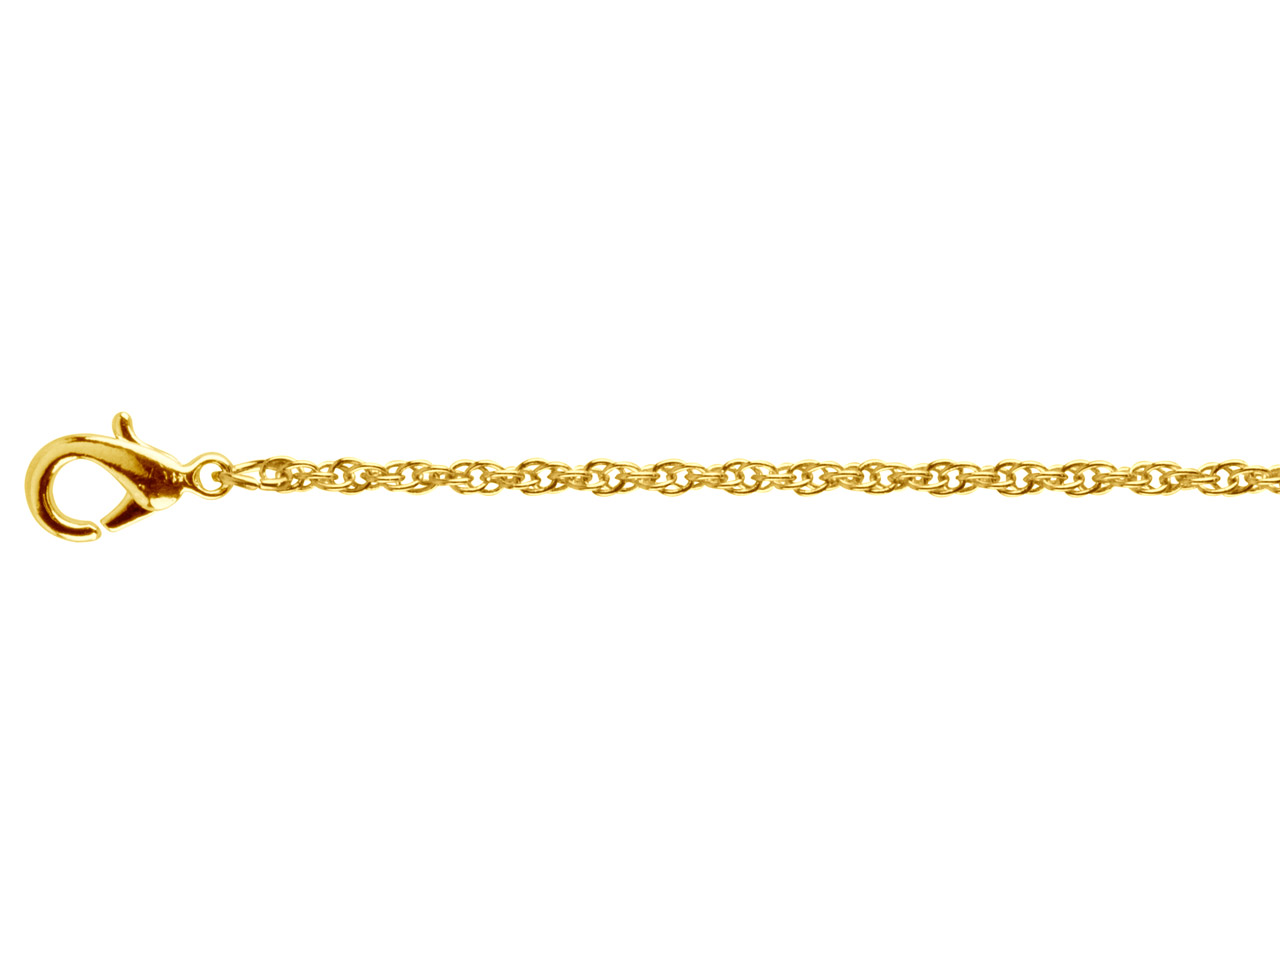 Gold Plated Rope 1.8mm 18